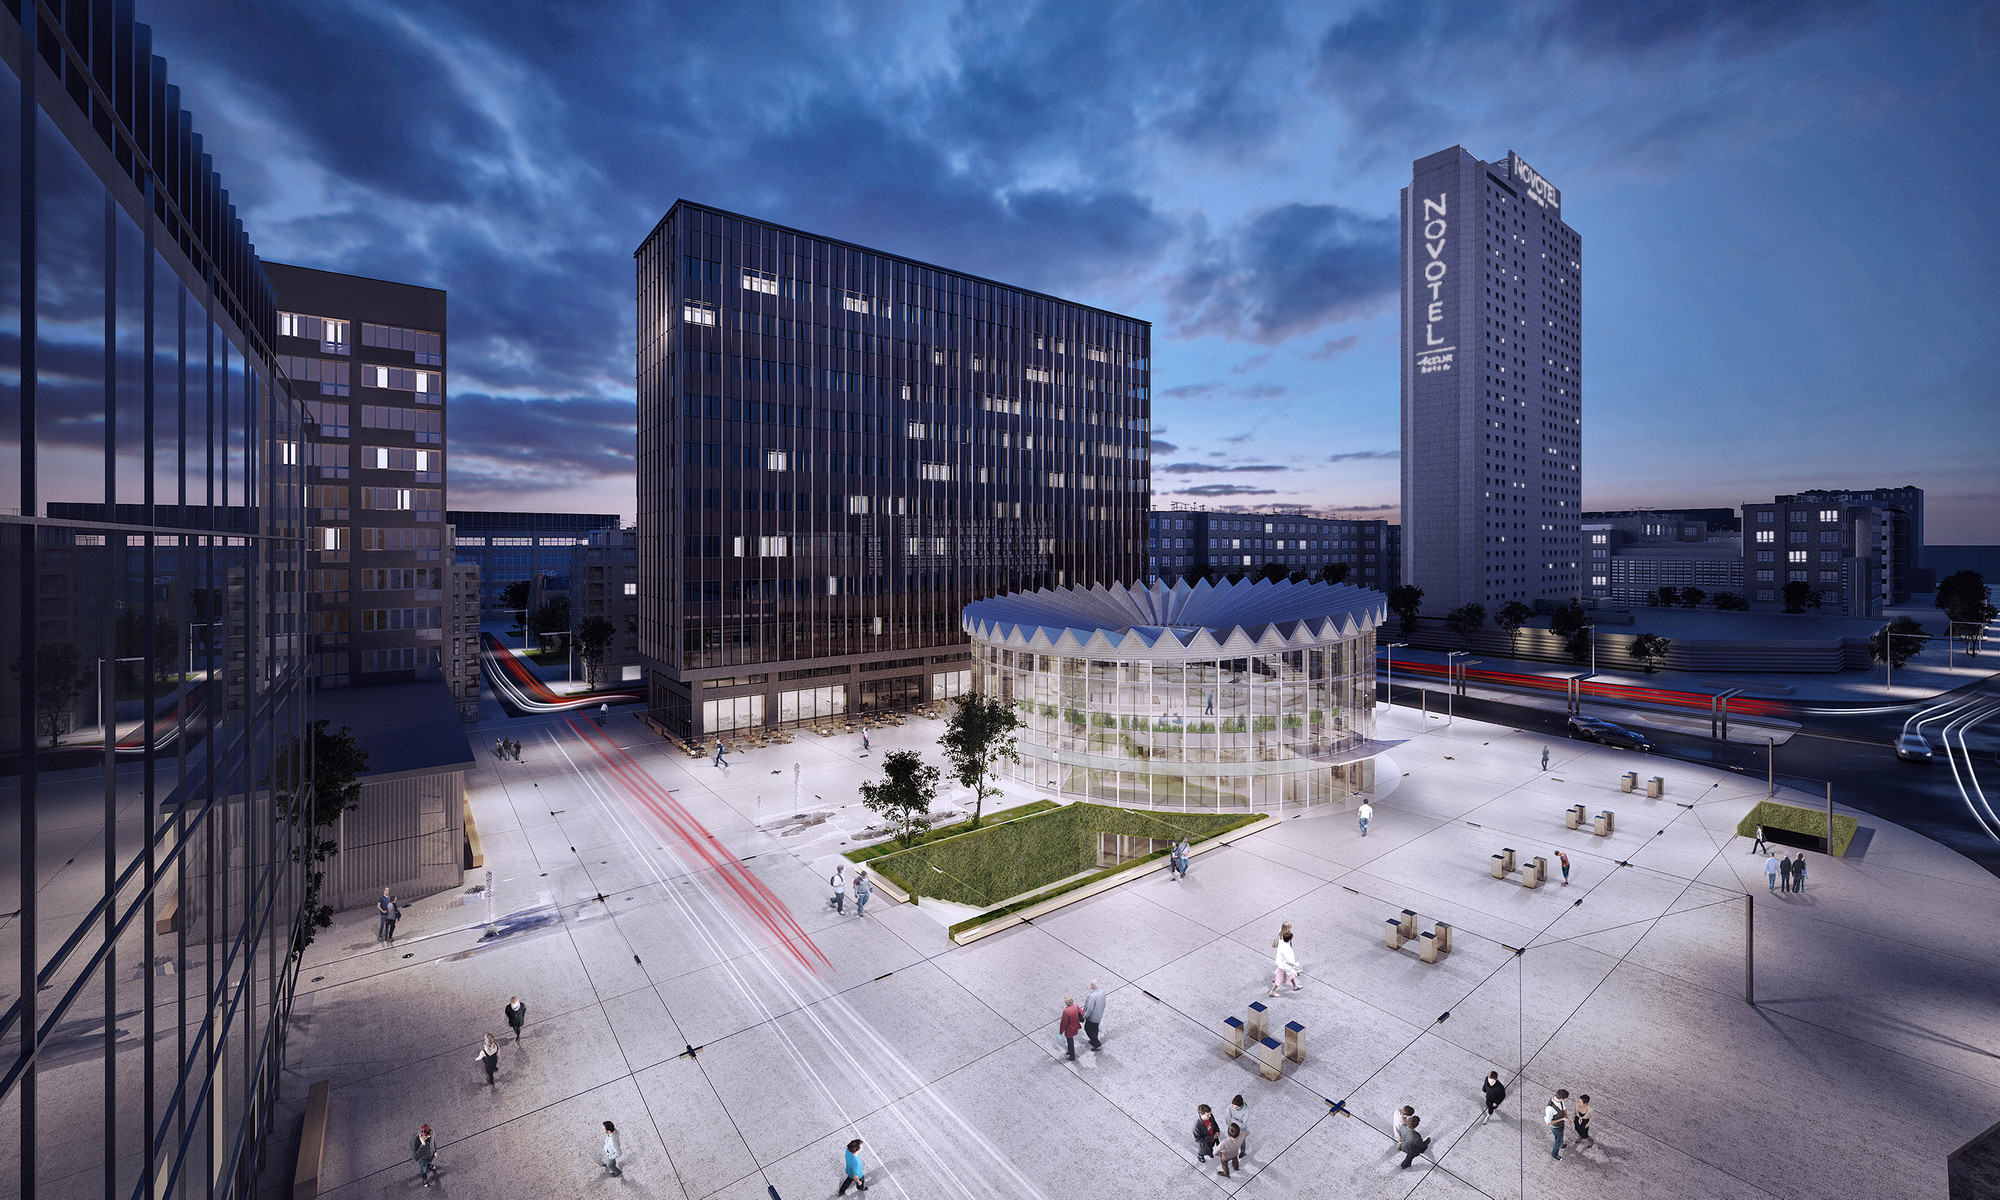 """GowinSiuta Studio Wins 2013 """"Changing the Face"""" Competition in Warsaw, Birds Eye View. Image Courtesy of GowinSiuta"""